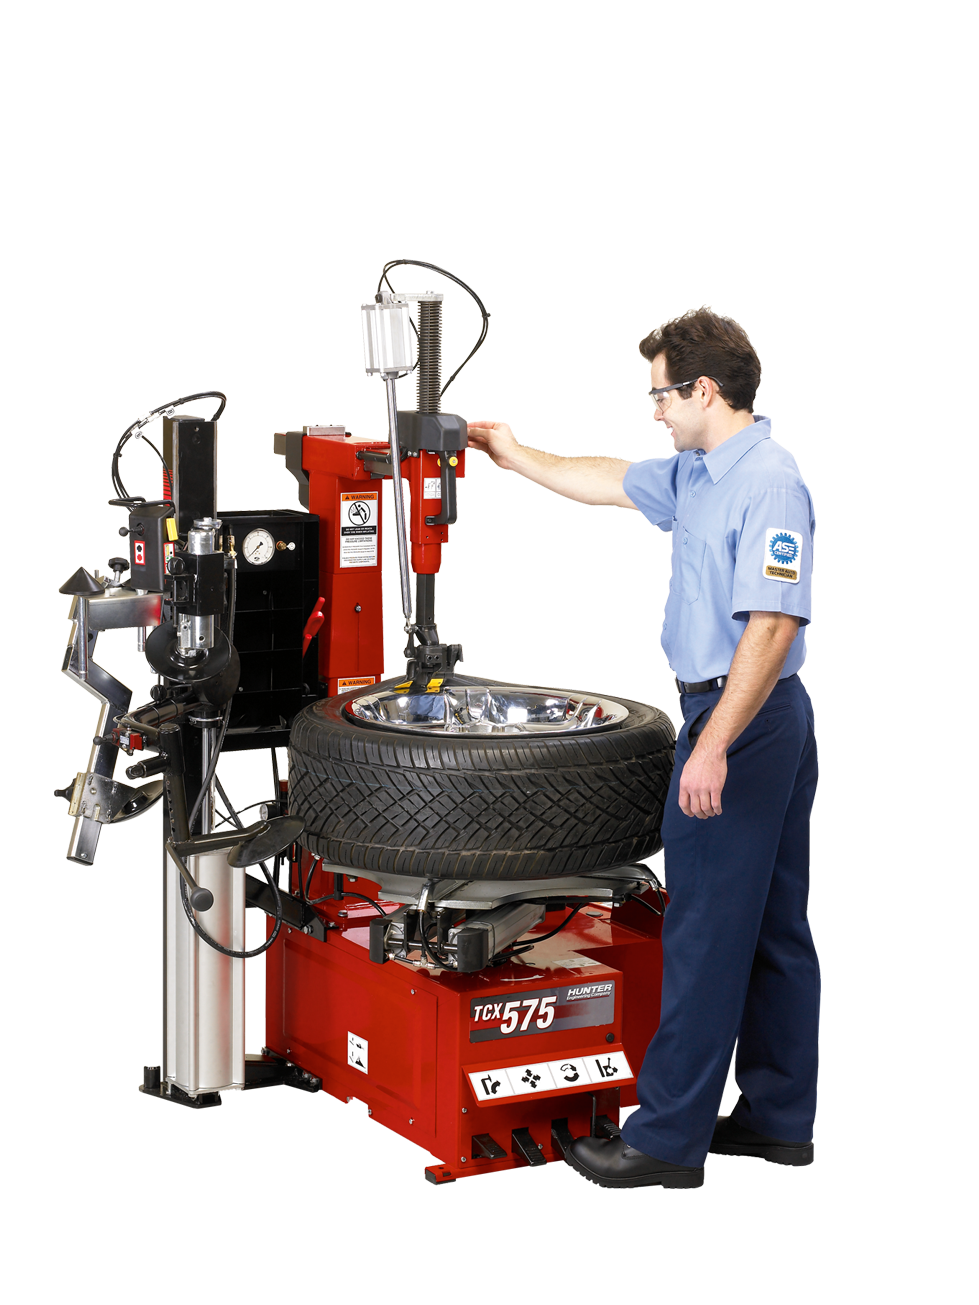 buy a hunter tire changer in new haven CT